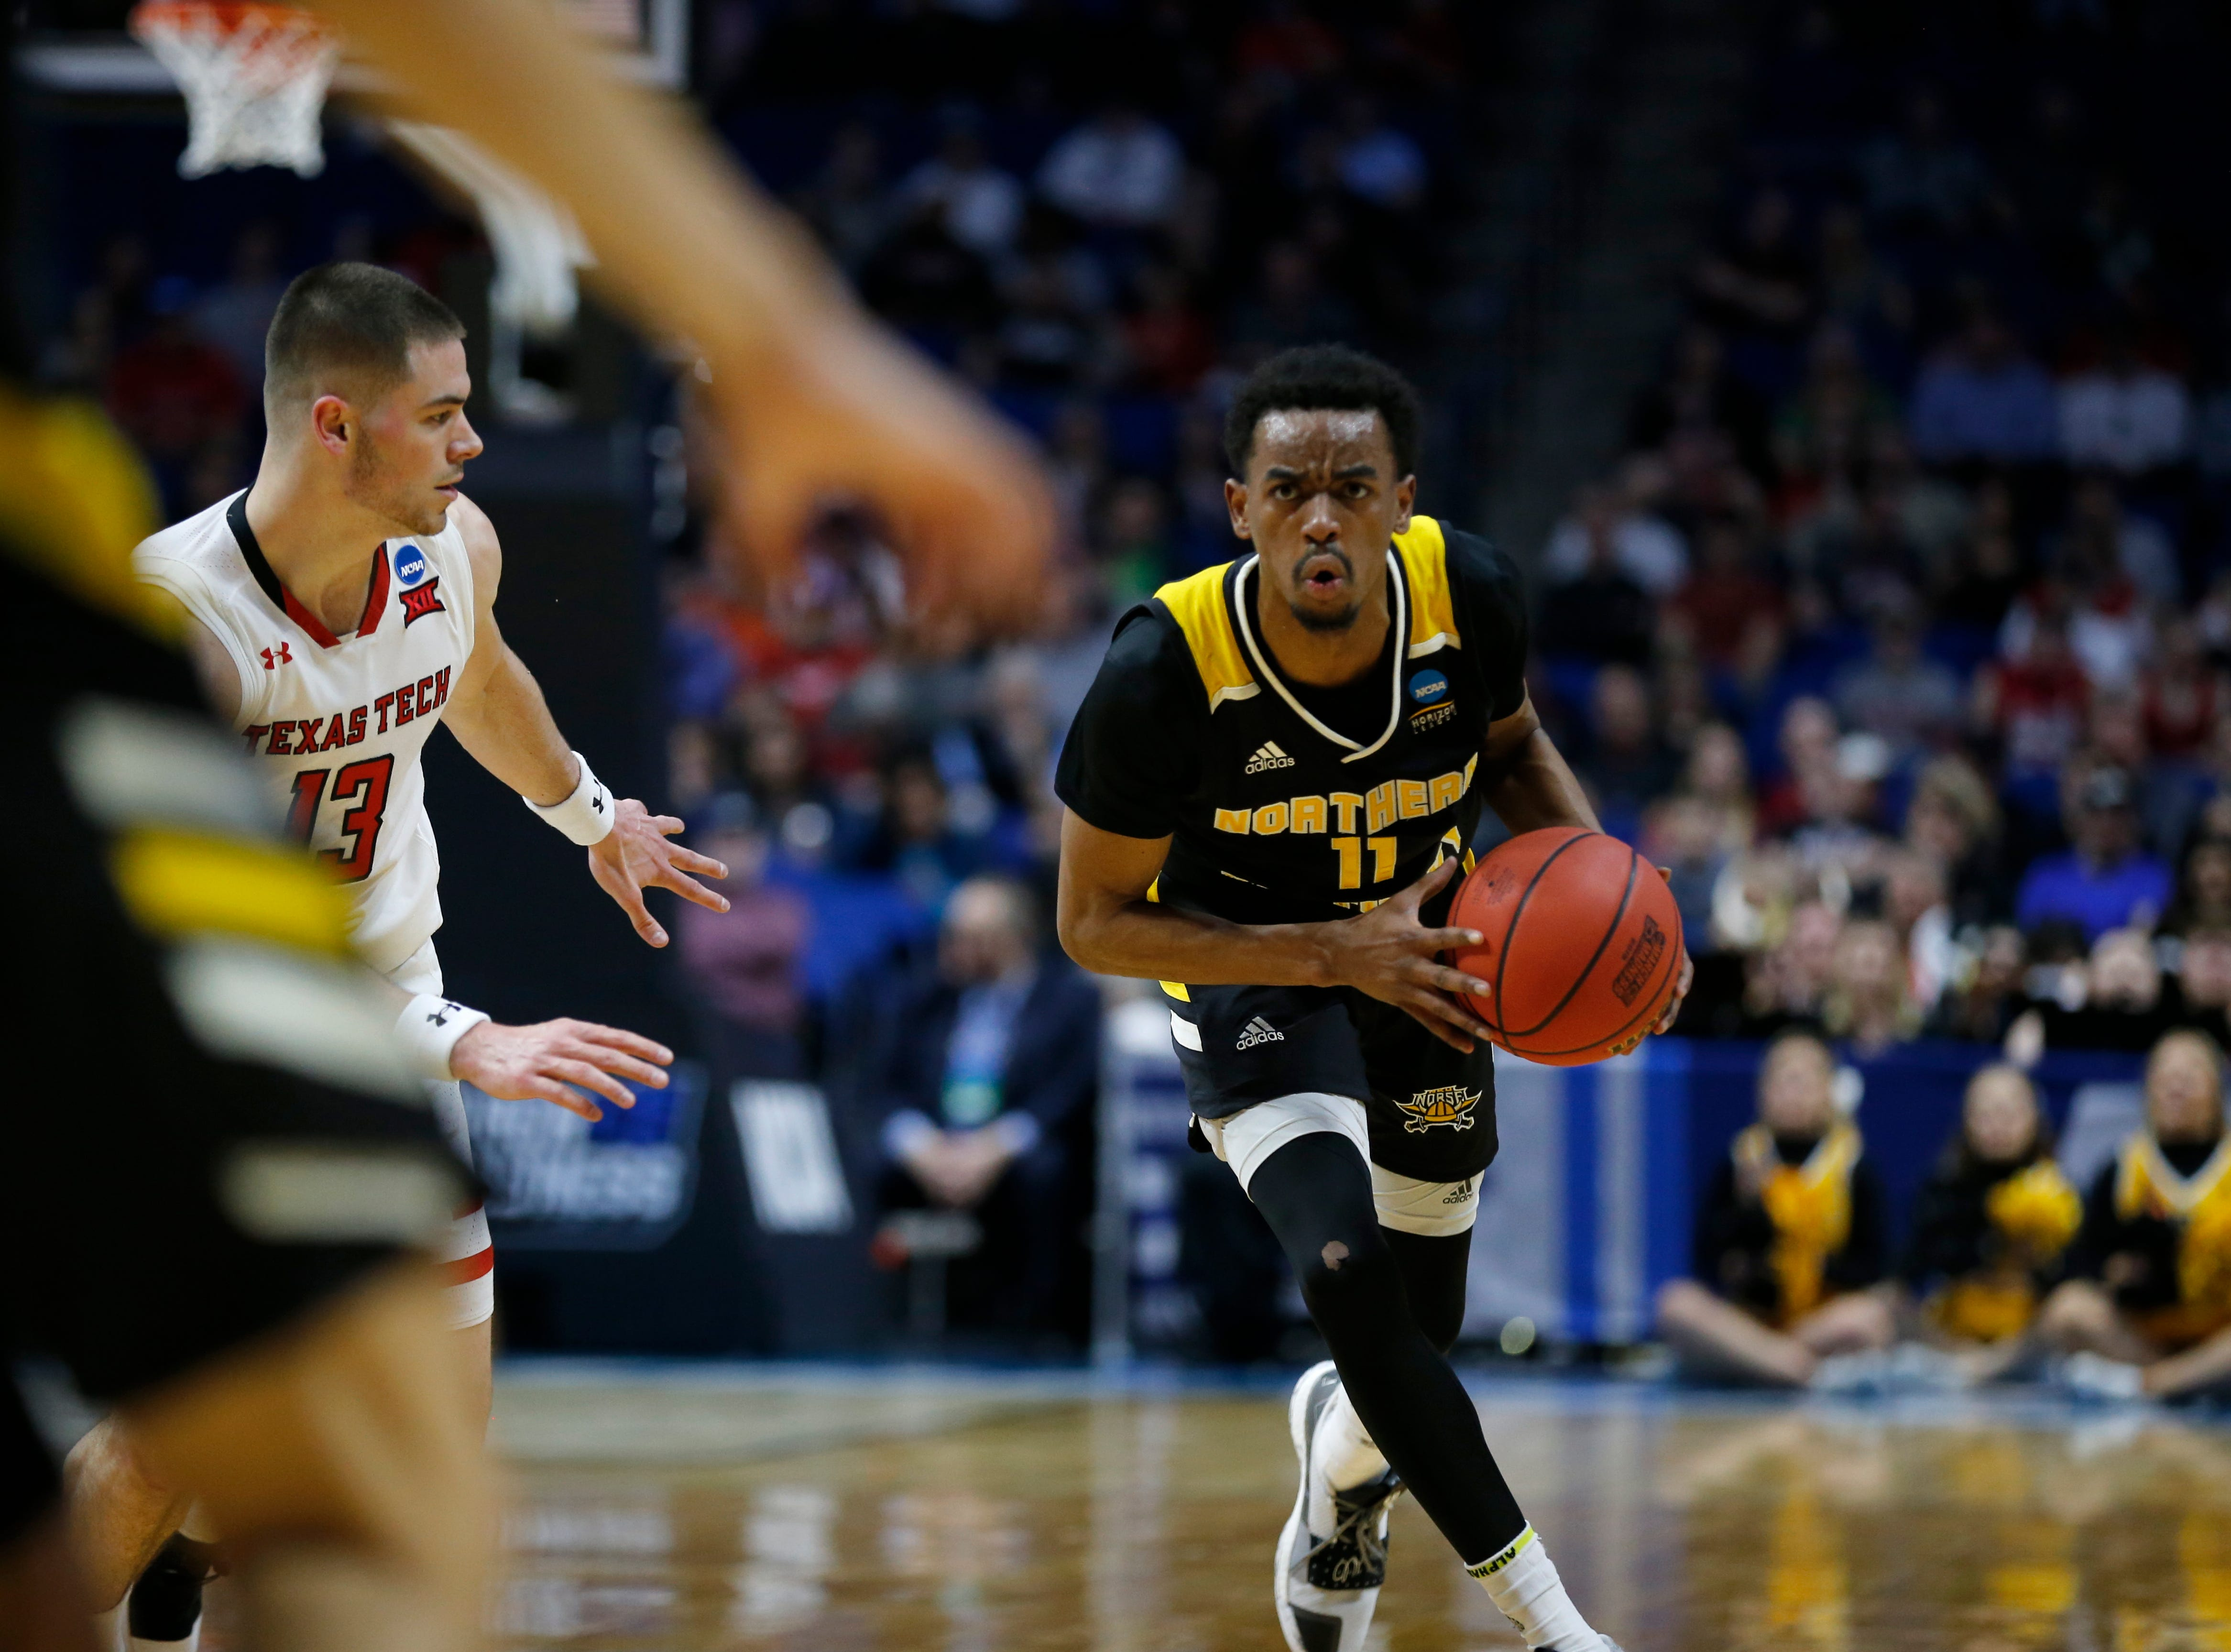 Northern Kentucky Norse guard Jalen Tate (11) looks to make a pass under pressure from Texas Tech Red Raiders guard Matt Mooney (13) in the first half of the NCAA Tournament First Round game between the 14-seeded Northern Kentucky Norse and the 3-seeded Texas Tech Red Raiders the BOK Center in downtown Tulsa on Friday, March 22, 2019. Texas Tech led 30-26 at halftime.